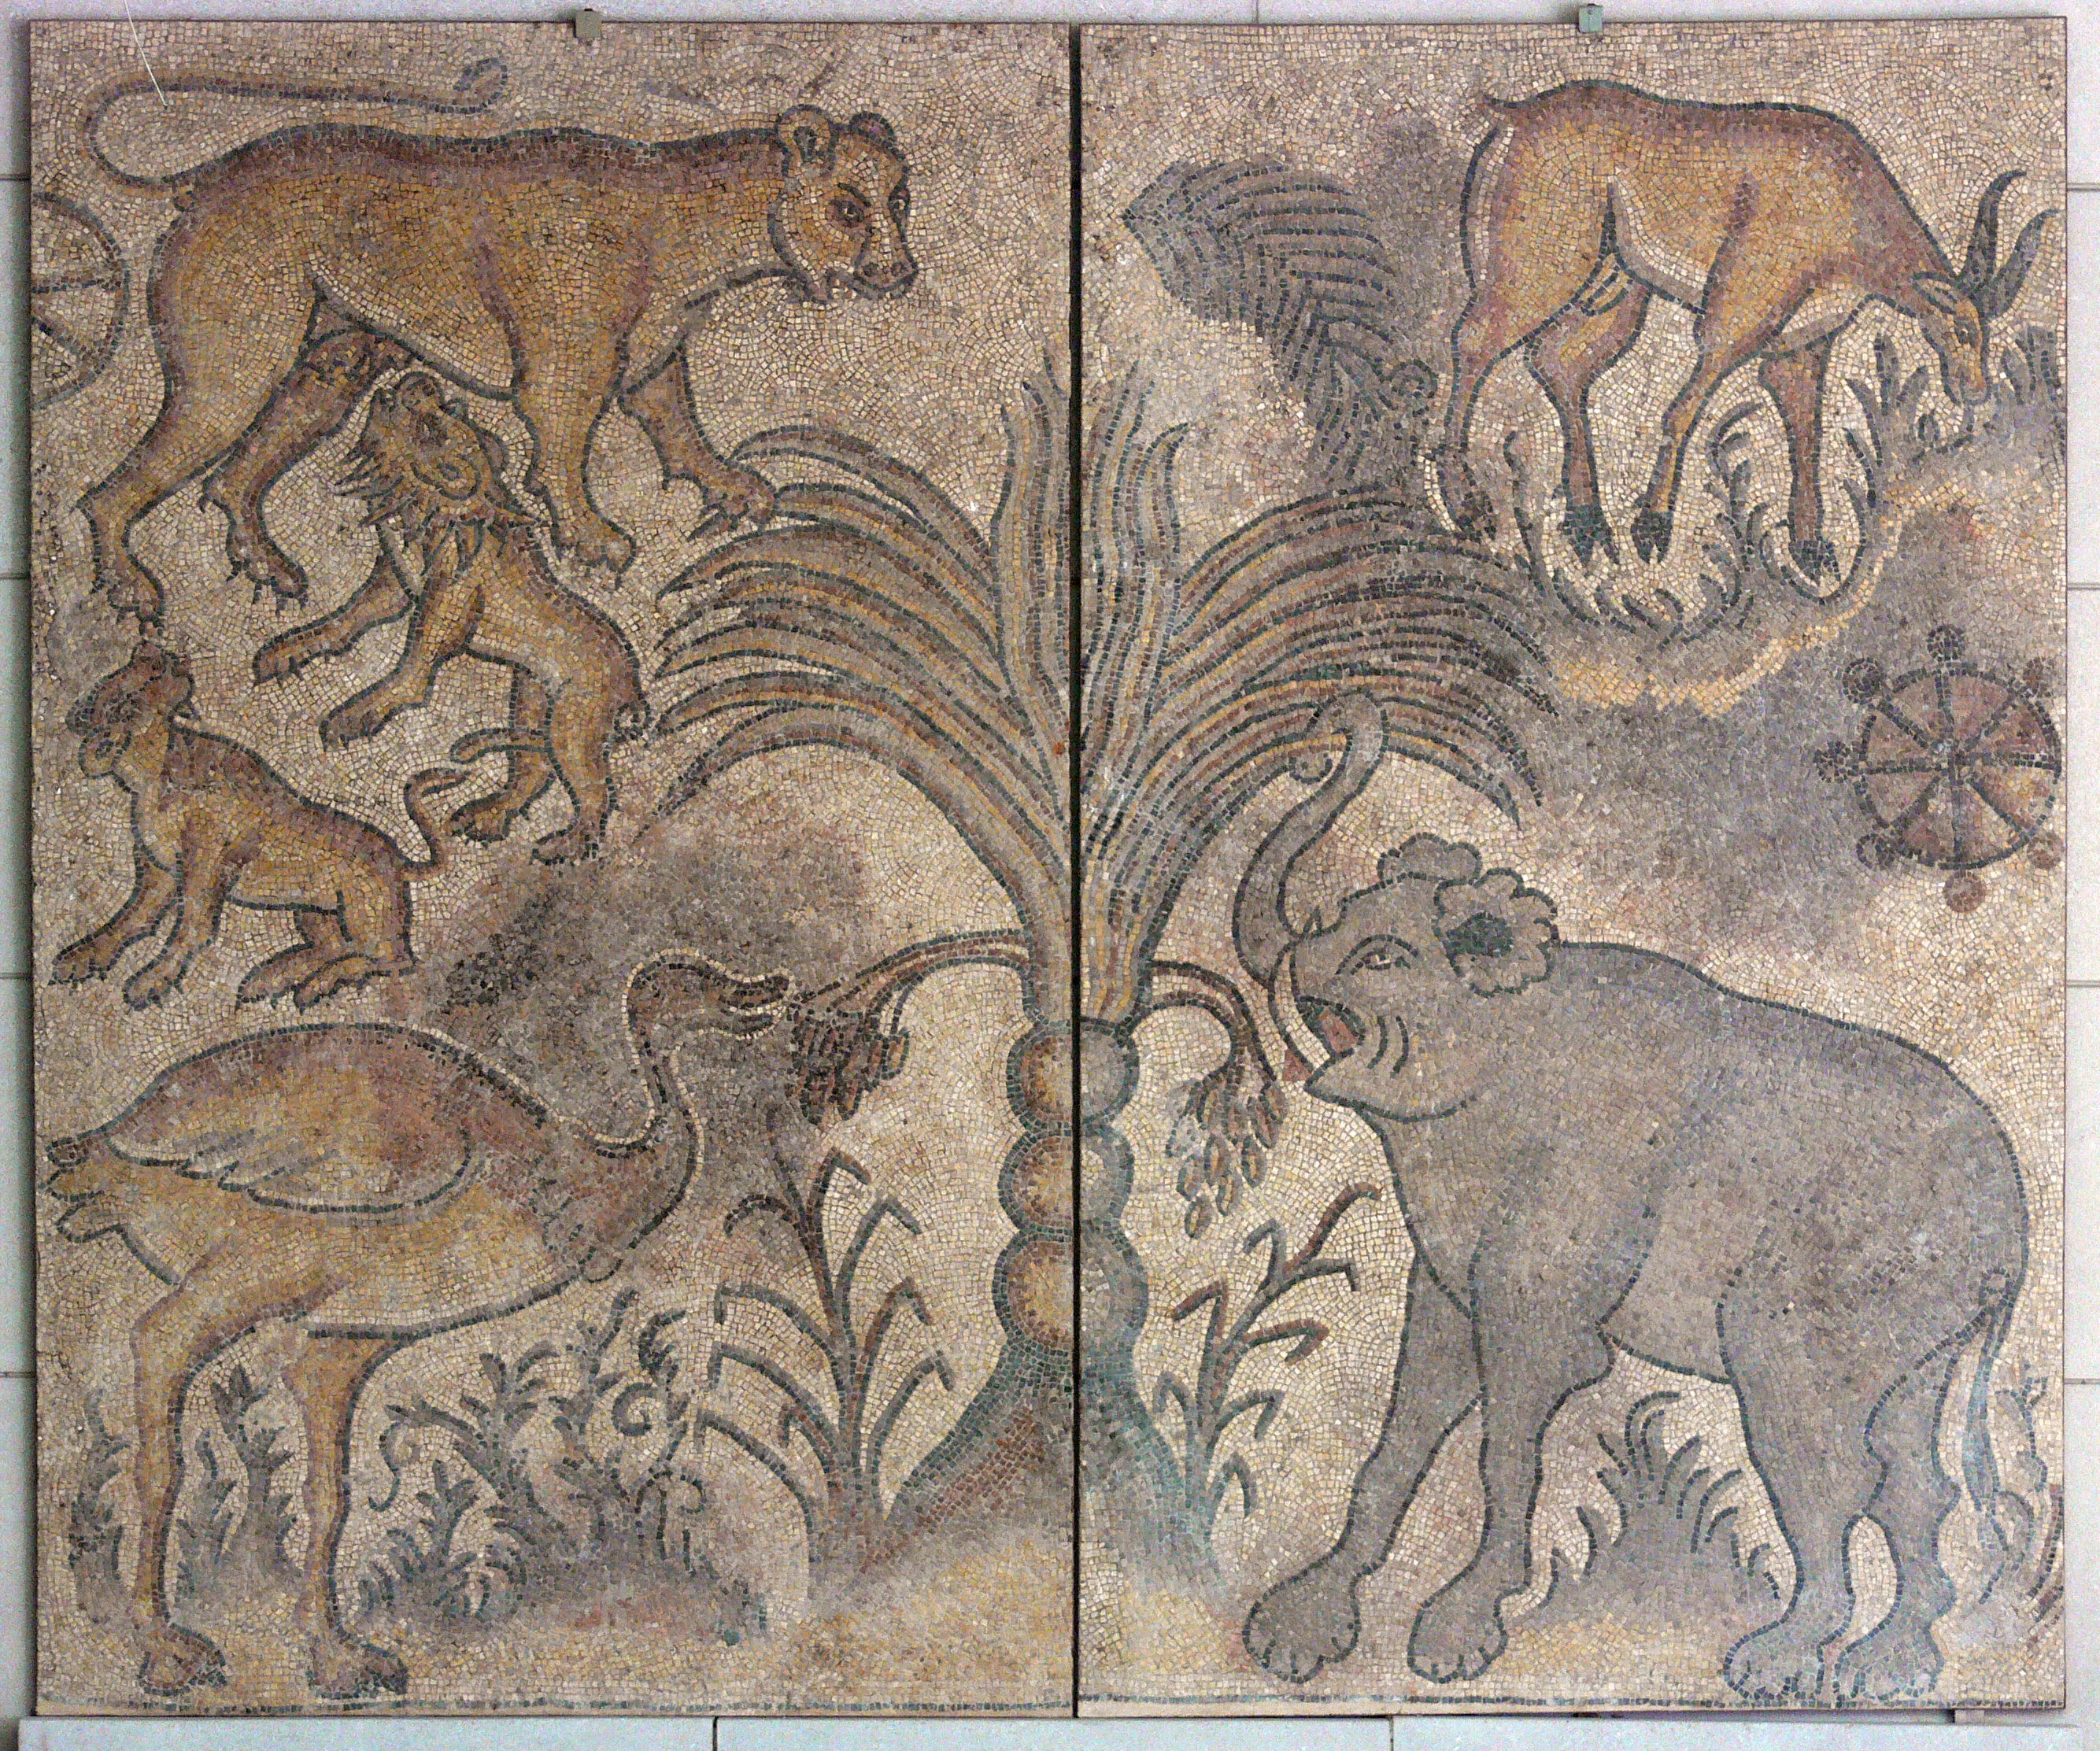 Image of: Ancient Filemosaic Scene With Wild Animals Dmajpg Wikimedia Commons Filemosaic Scene With Wild Animals Dmajpg Wikimedia Commons